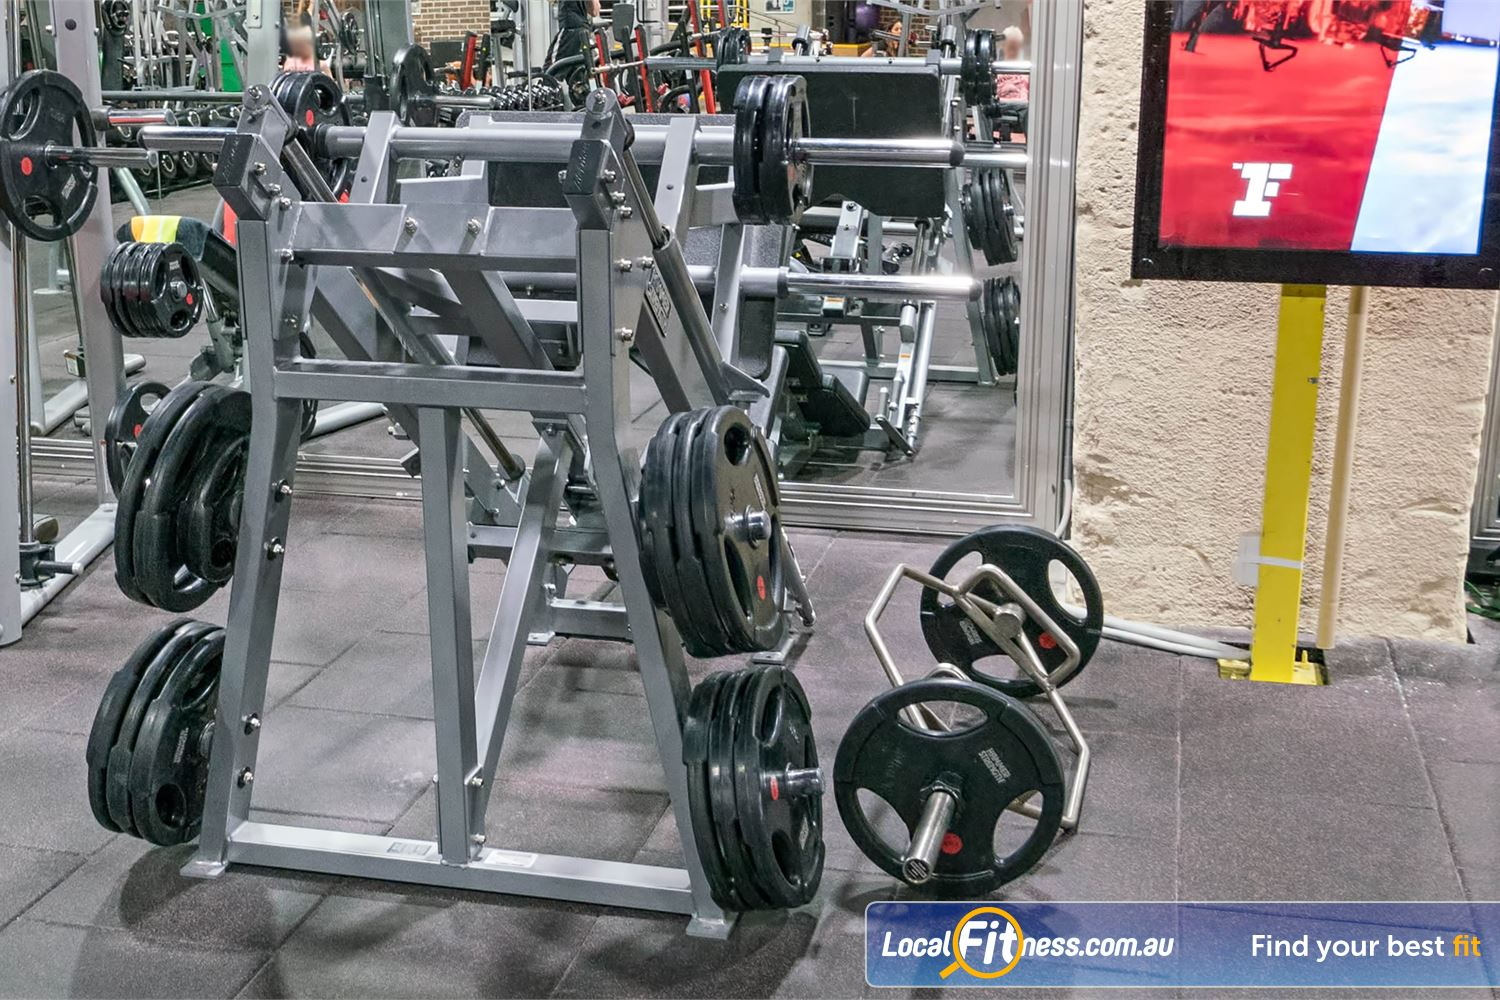 Fitness First Platinum Shelley St Near Strawberry Hills Heavy duty leg press machine with great range of weight plates.